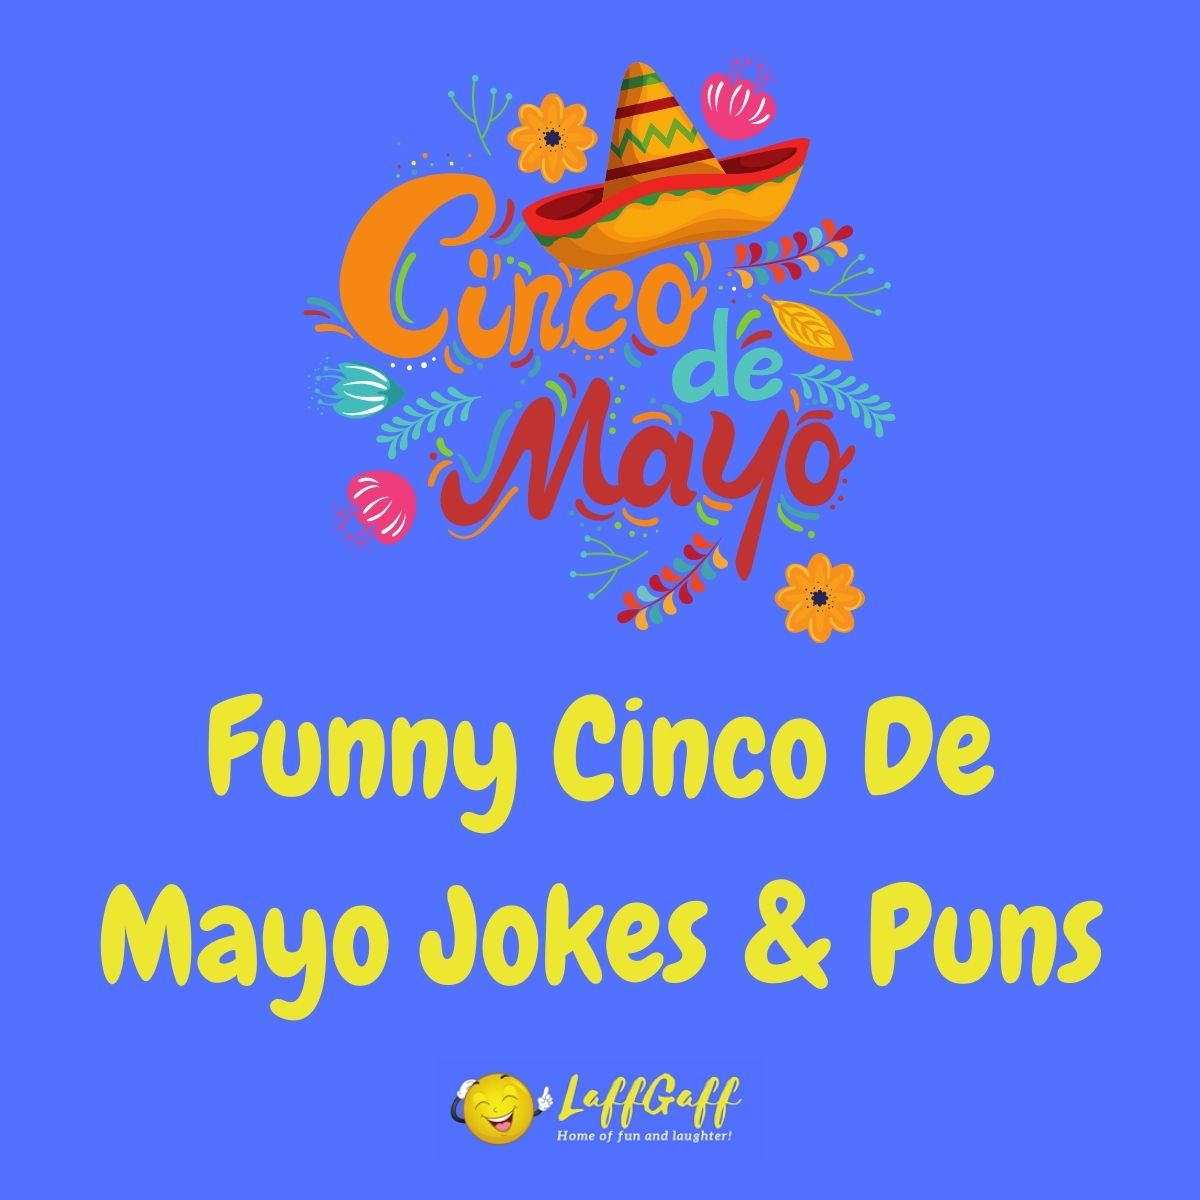 Featured image for a page of funny Cinco de Mayo jokes and puns.